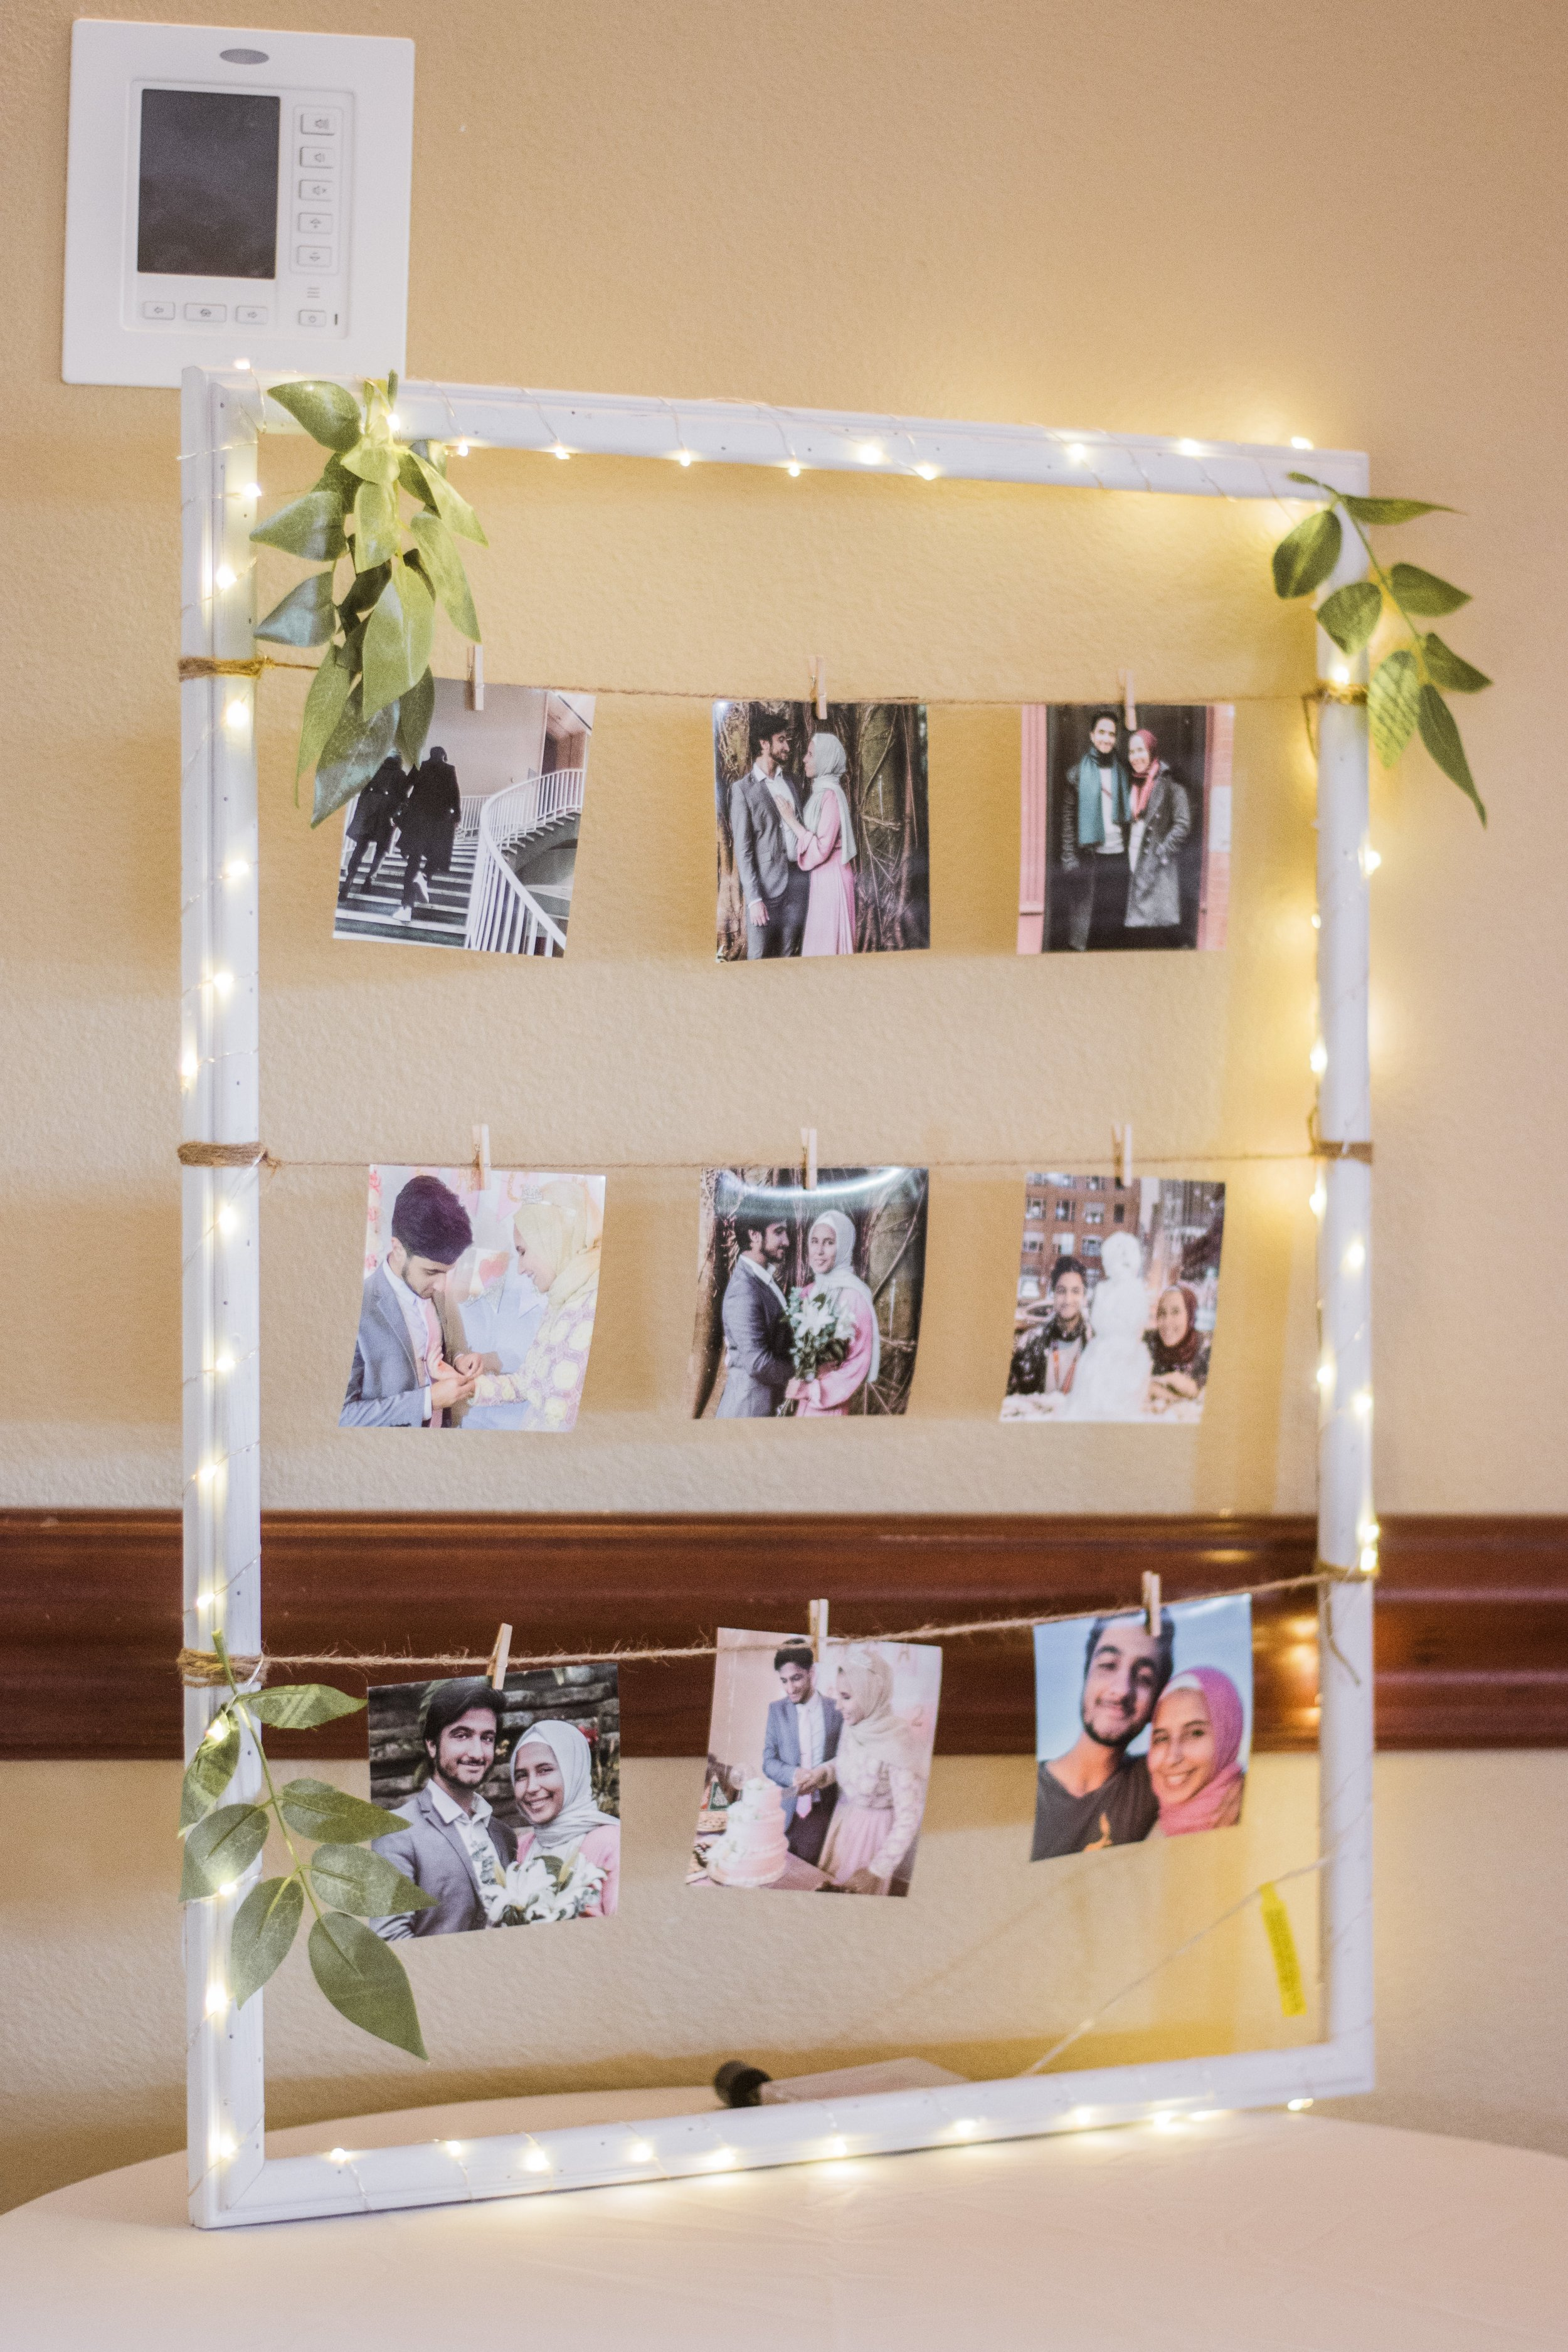 A DIY project we made by taking a frame from the thrift store, spray painting it, wrapping fairy lights around, and tying twine with mini clips to hold the pictures.